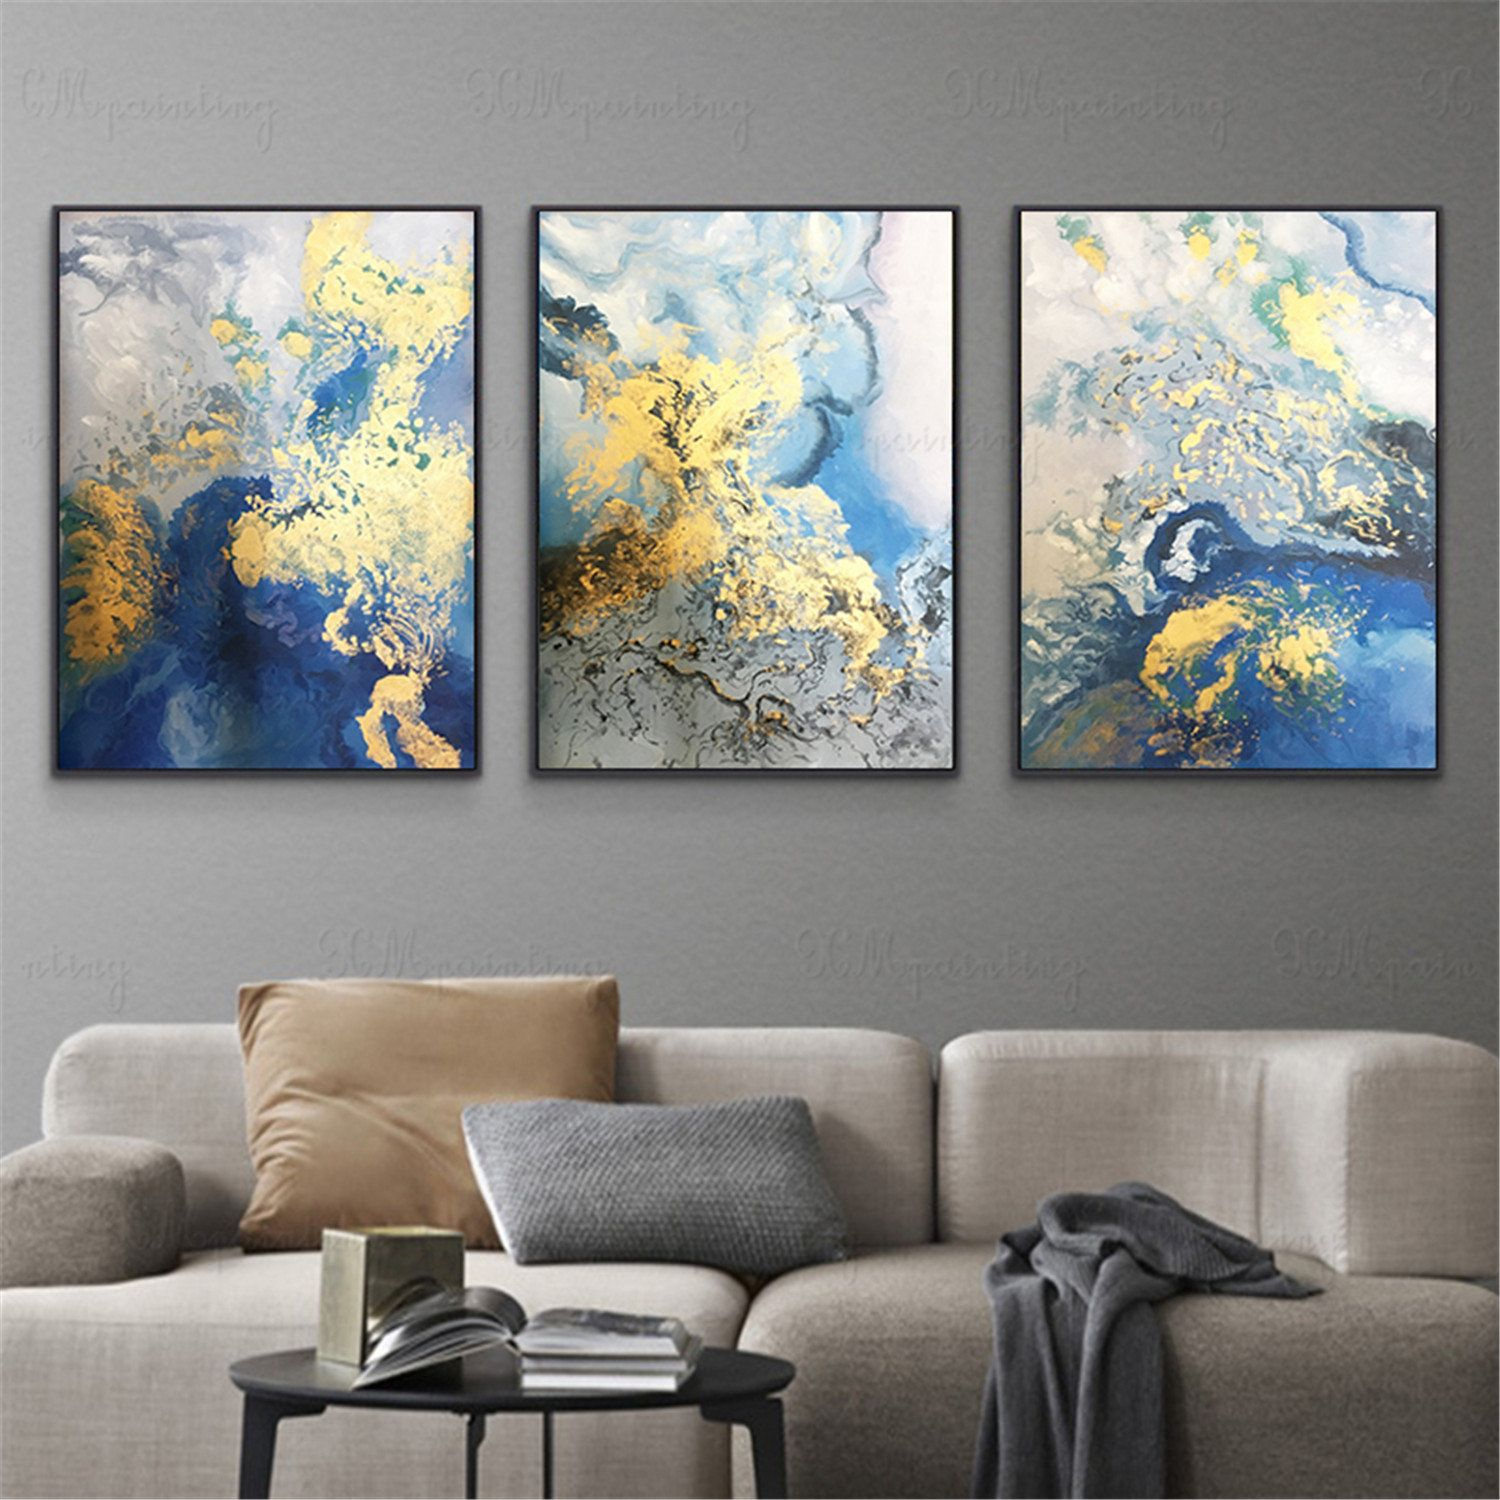 3 Pieces Gold Art Abstract Painting Wall Art Picture For Etsy Wall Art Living Room Living Room Pictures Living Room Art